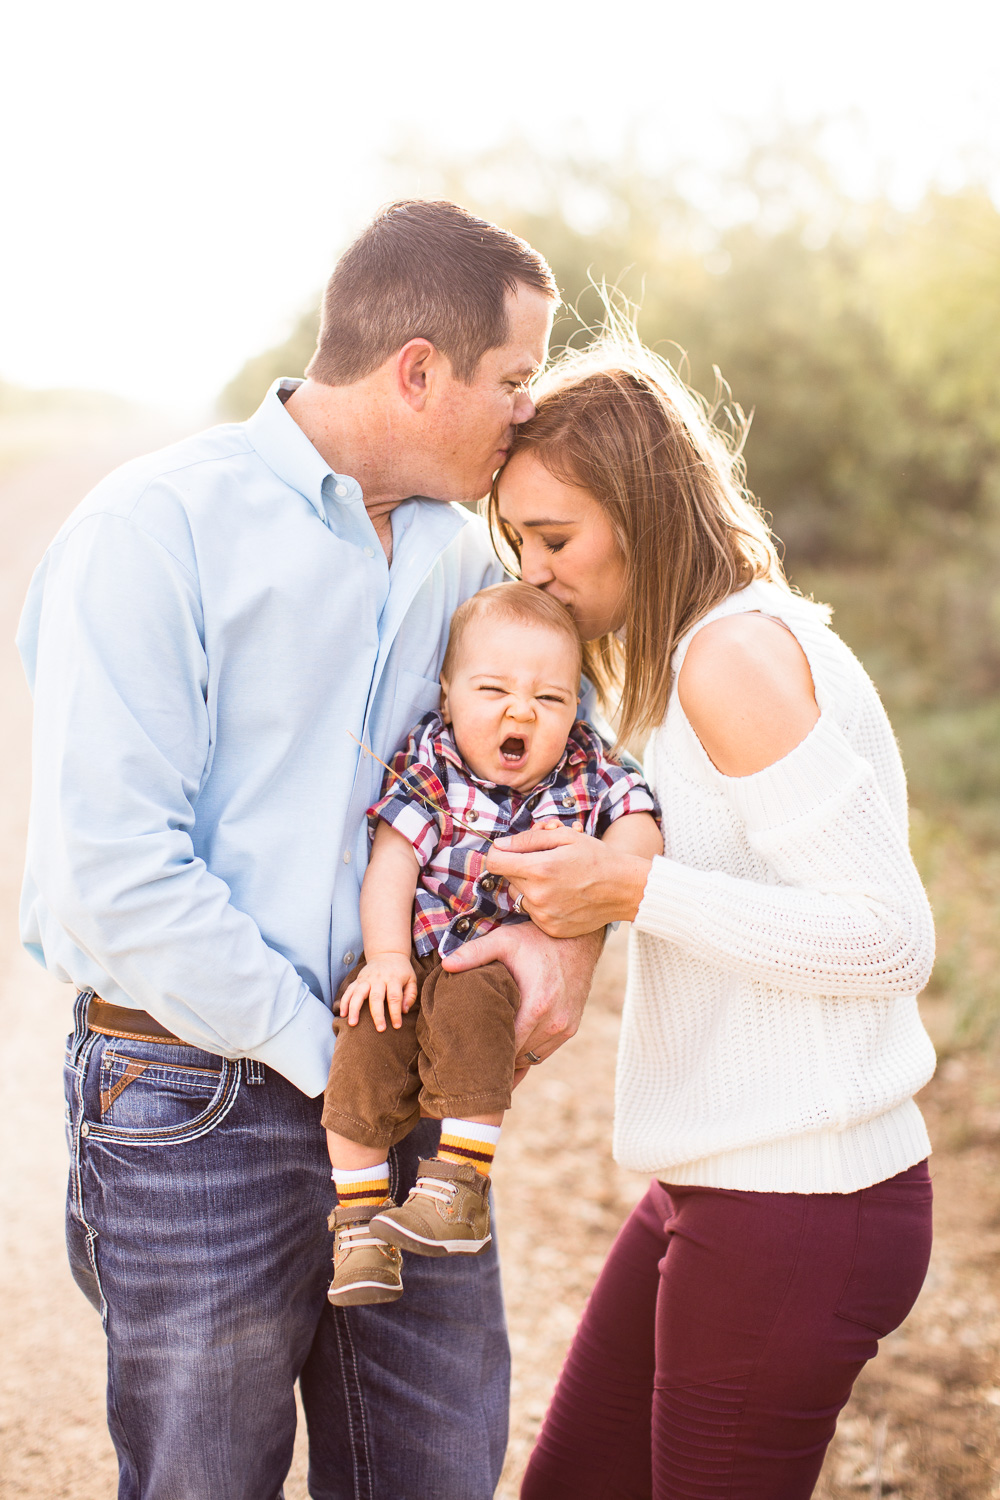 Abilene-Family-Photographer-JJMT-21.jpg